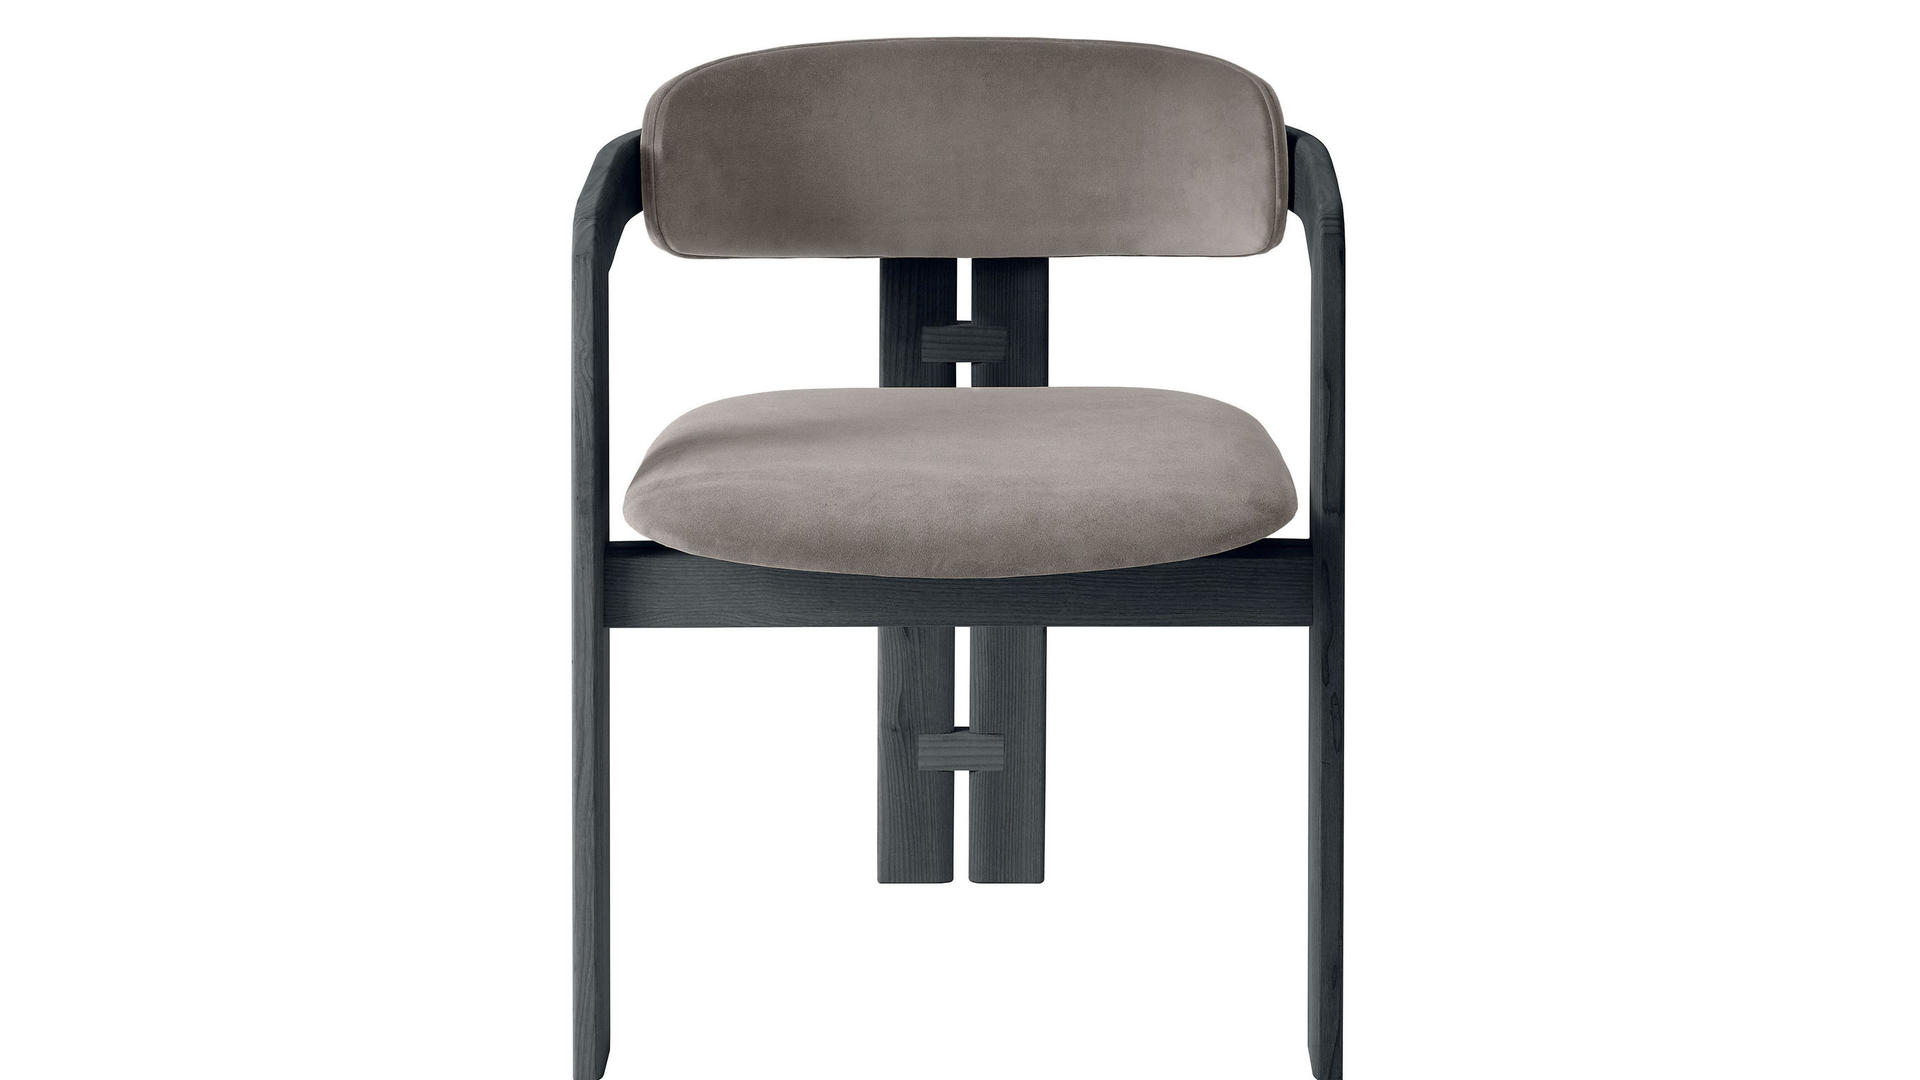 Gallotti & Radice 0414 chair.jpg